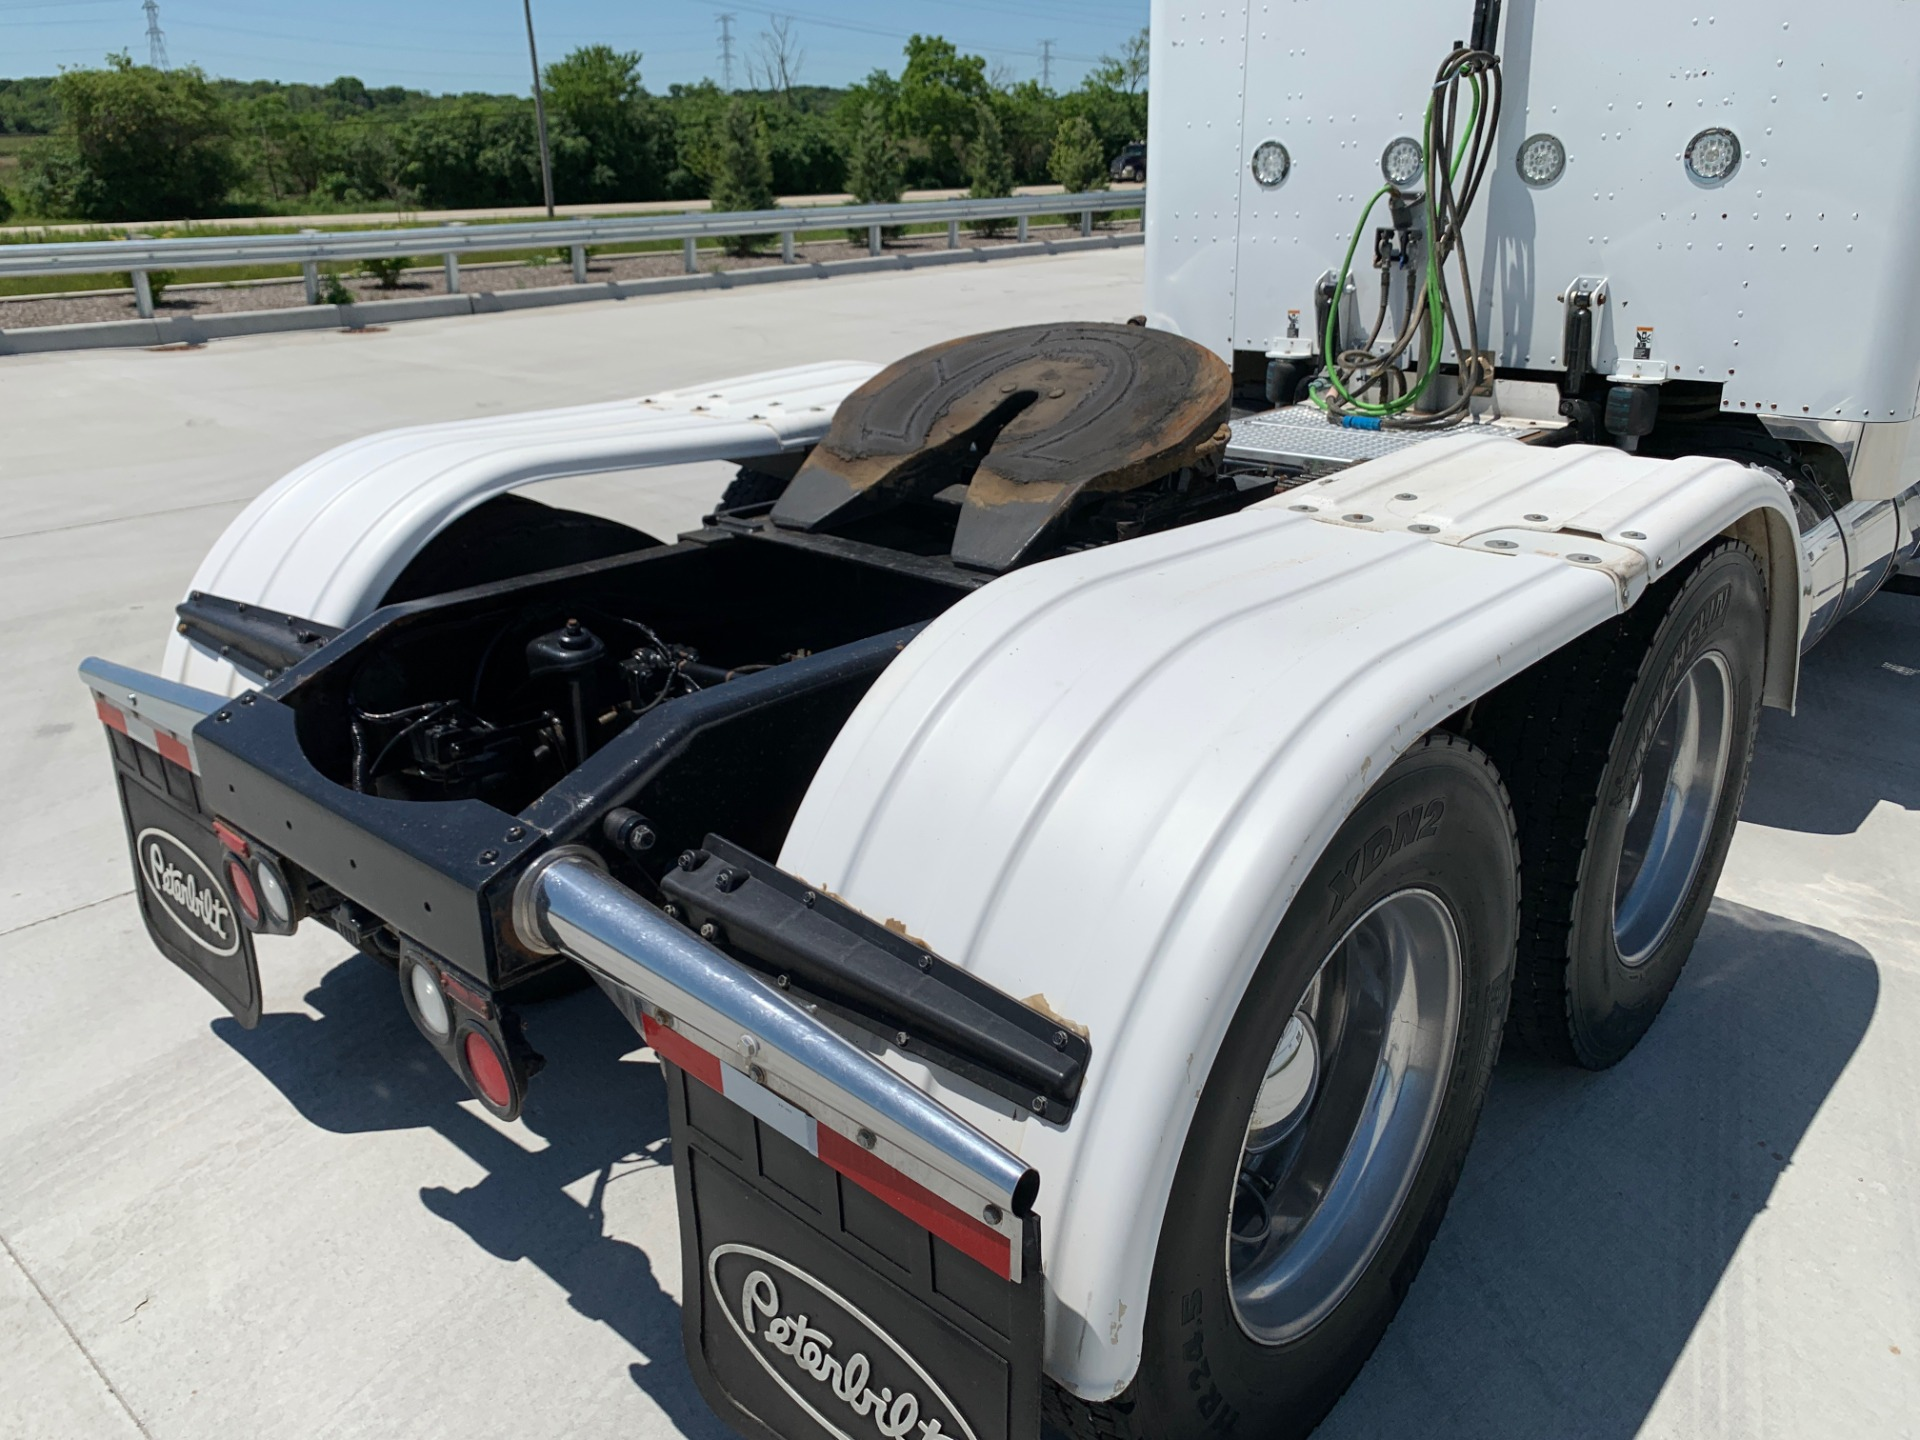 Used-2012-Peterbilt-389-SLEEPER-CANADIAN-REGISTERED-GLIDER-Detroit-Series-60-500-HP-SHIPPING-TO-CANADA-INCLUDED